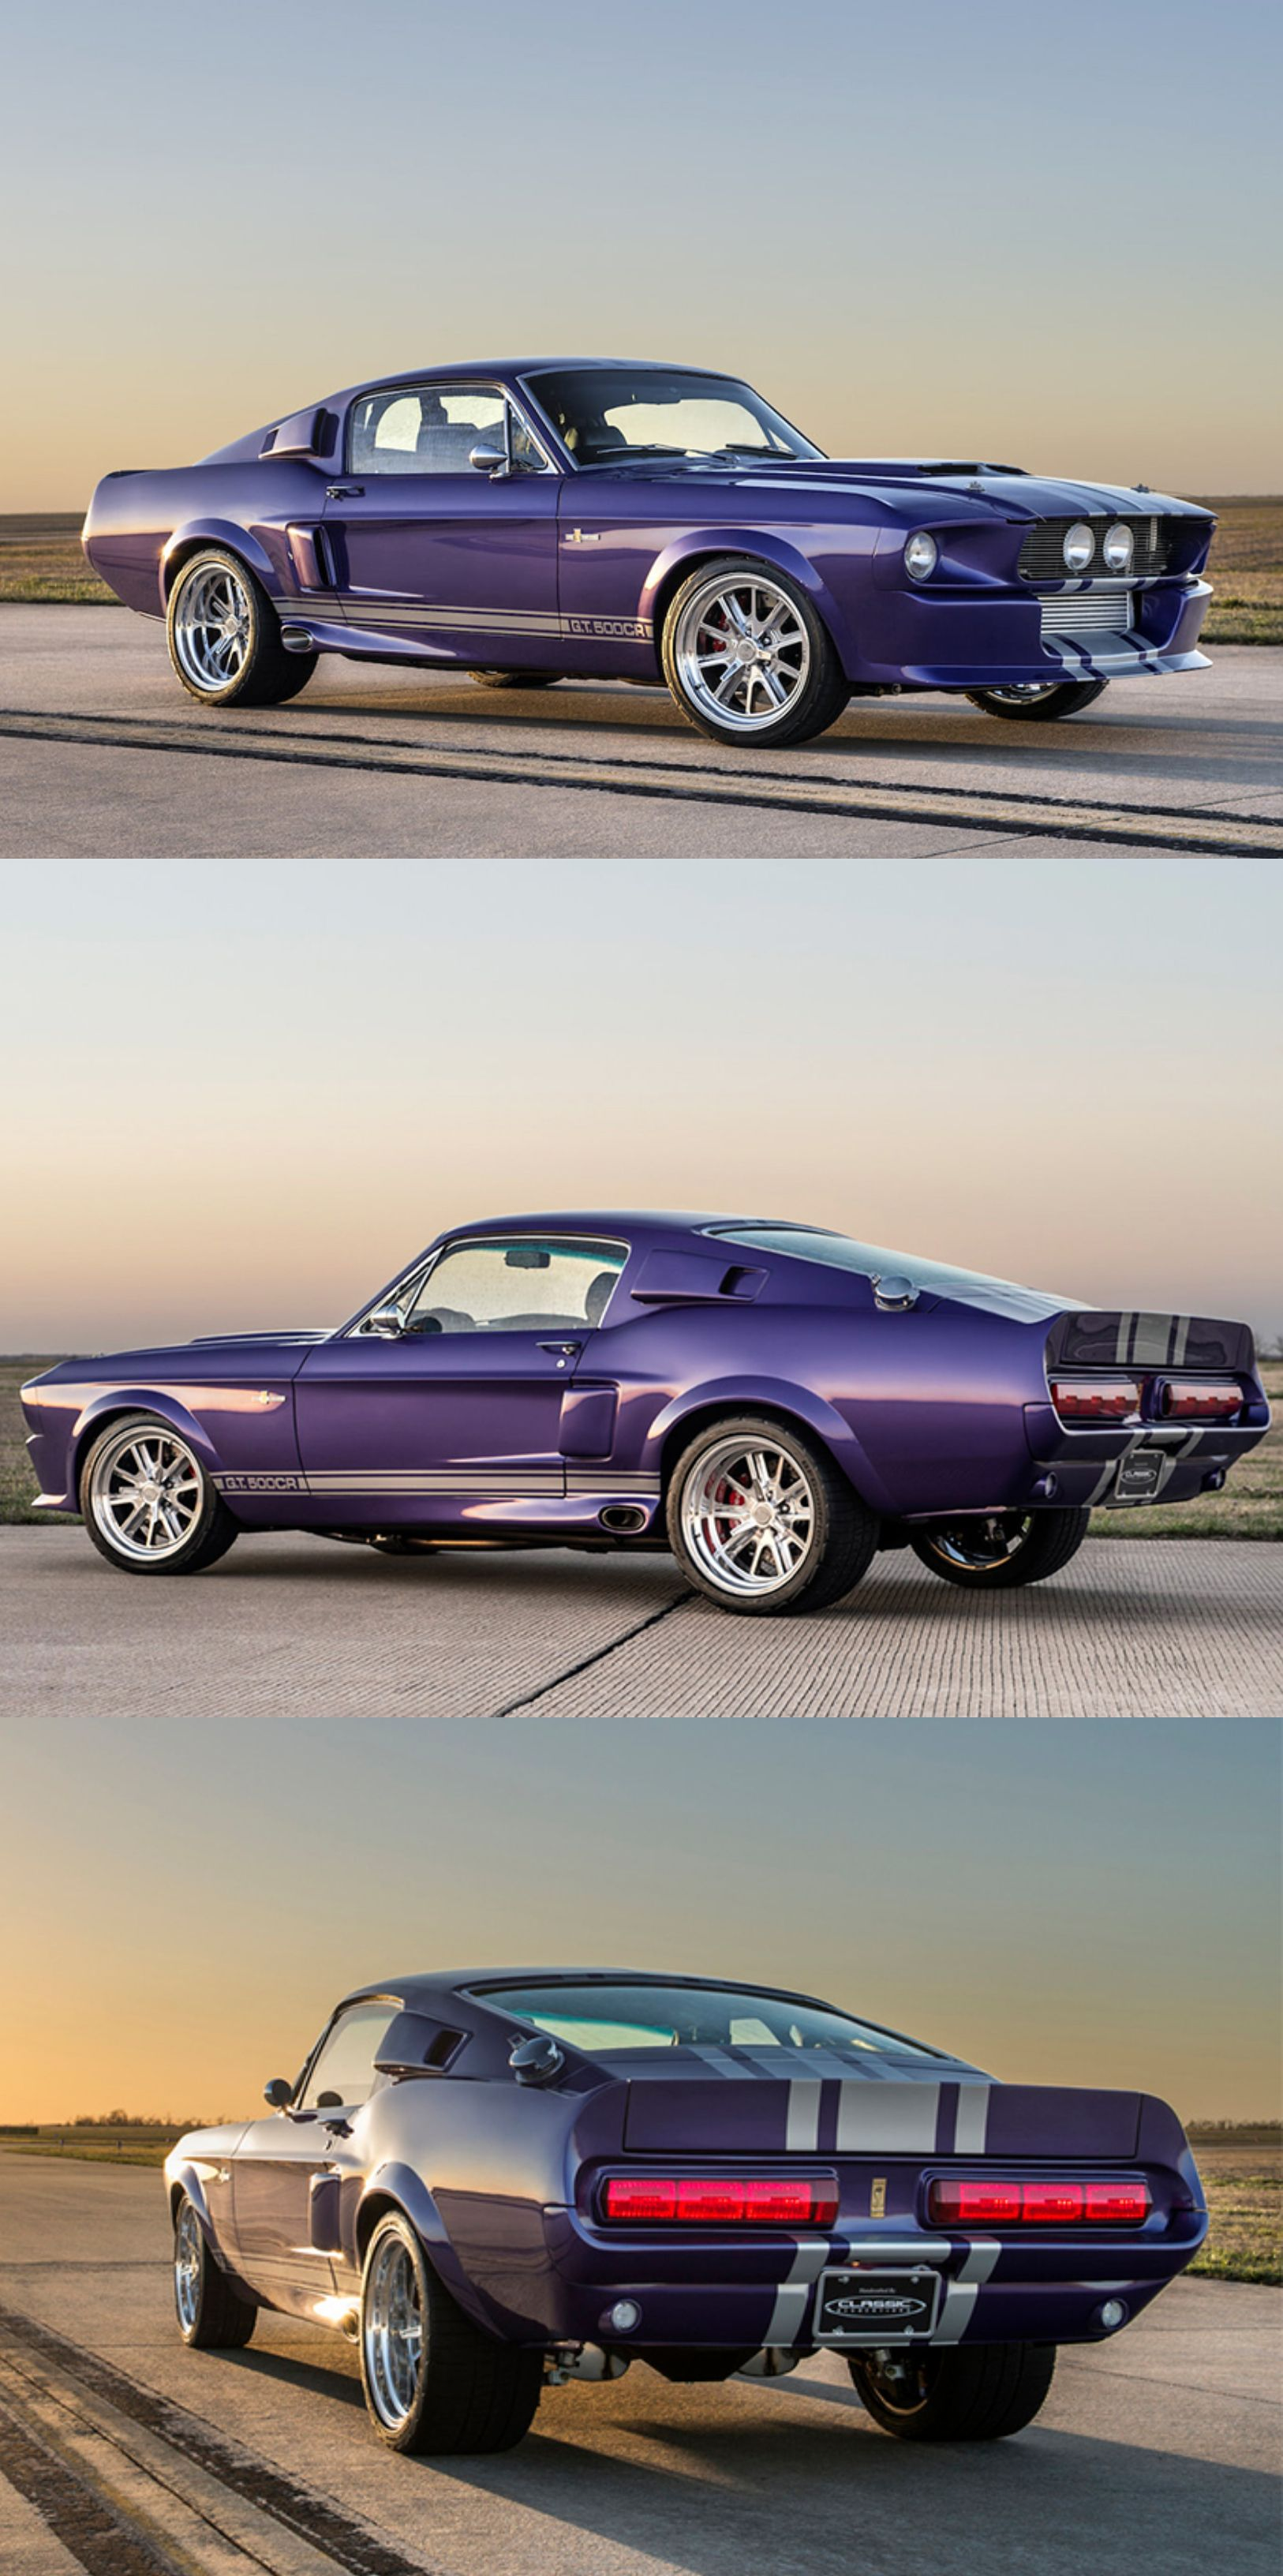 Check Out This Creation That Is Unusual And Weird – Replica Shelby GT500CR 900S